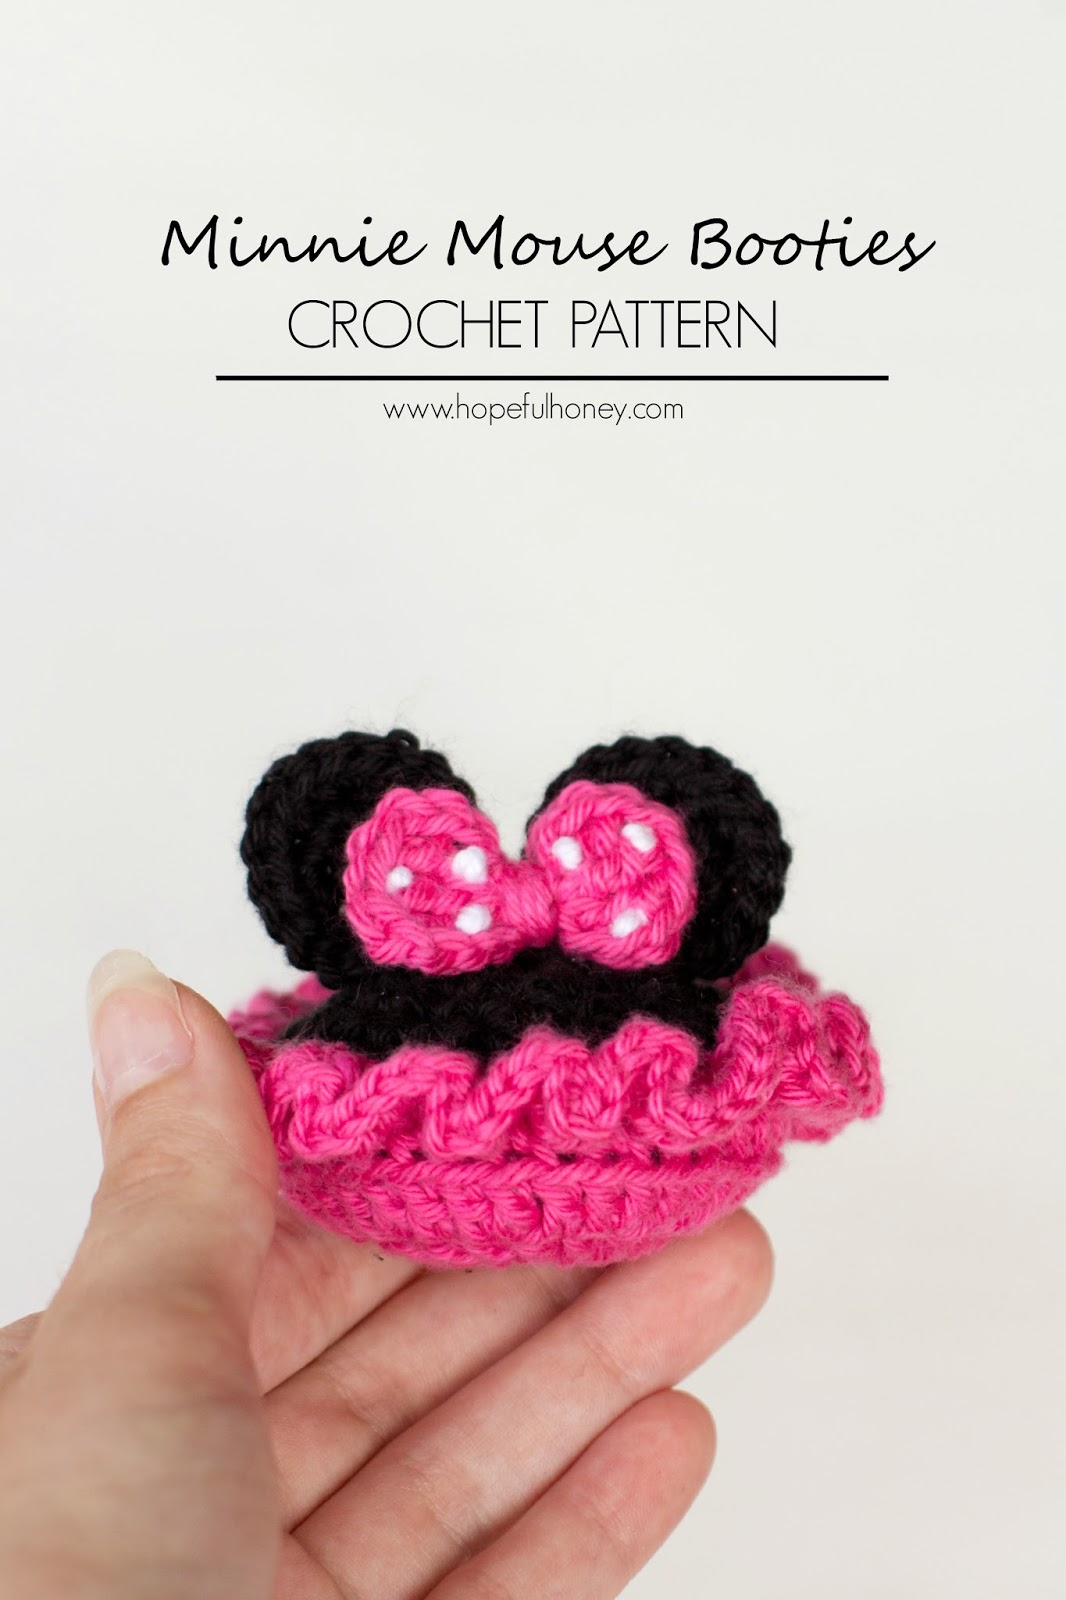 Free Crochet Pattern For Mickey Mouse Shoes : Hopeful Honey Craft, Crochet, Create: Mickey Mouse ...